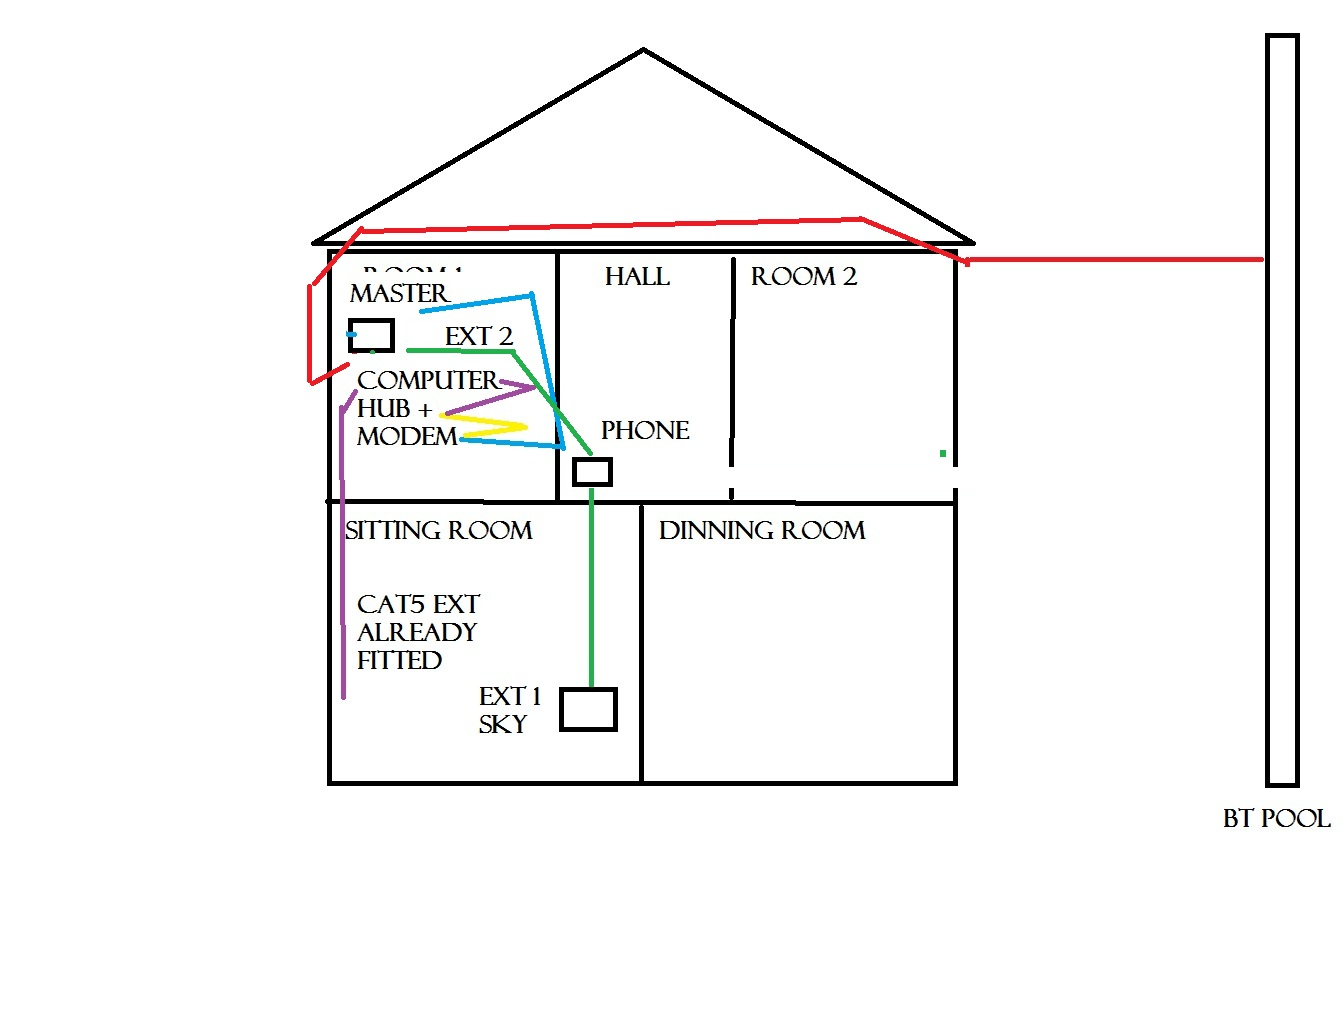 Bt Infinity, Need help on how the bt enginer will